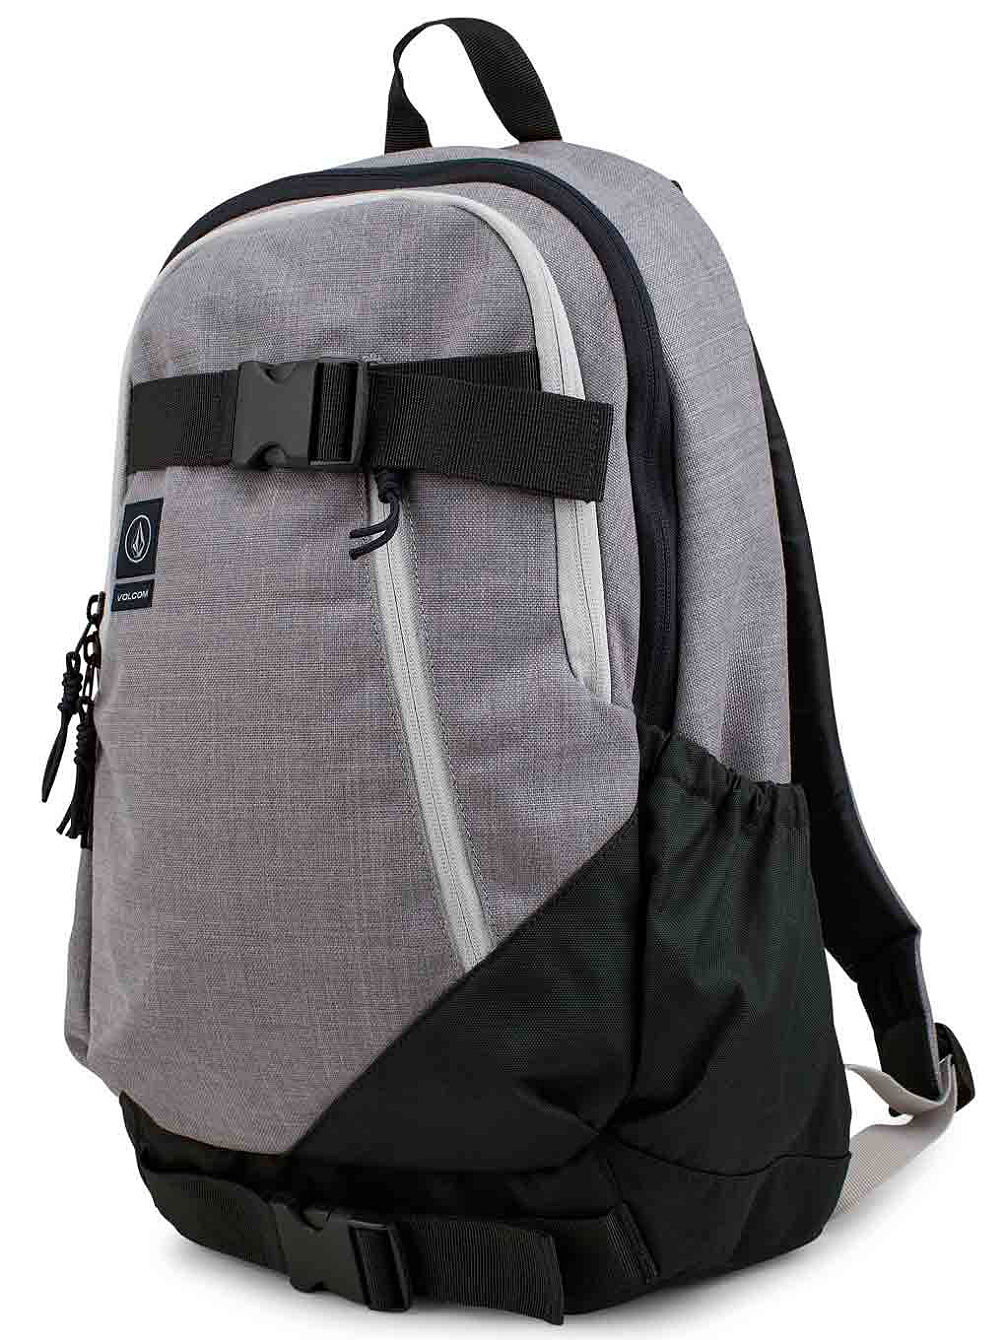 Substrate Rucksack